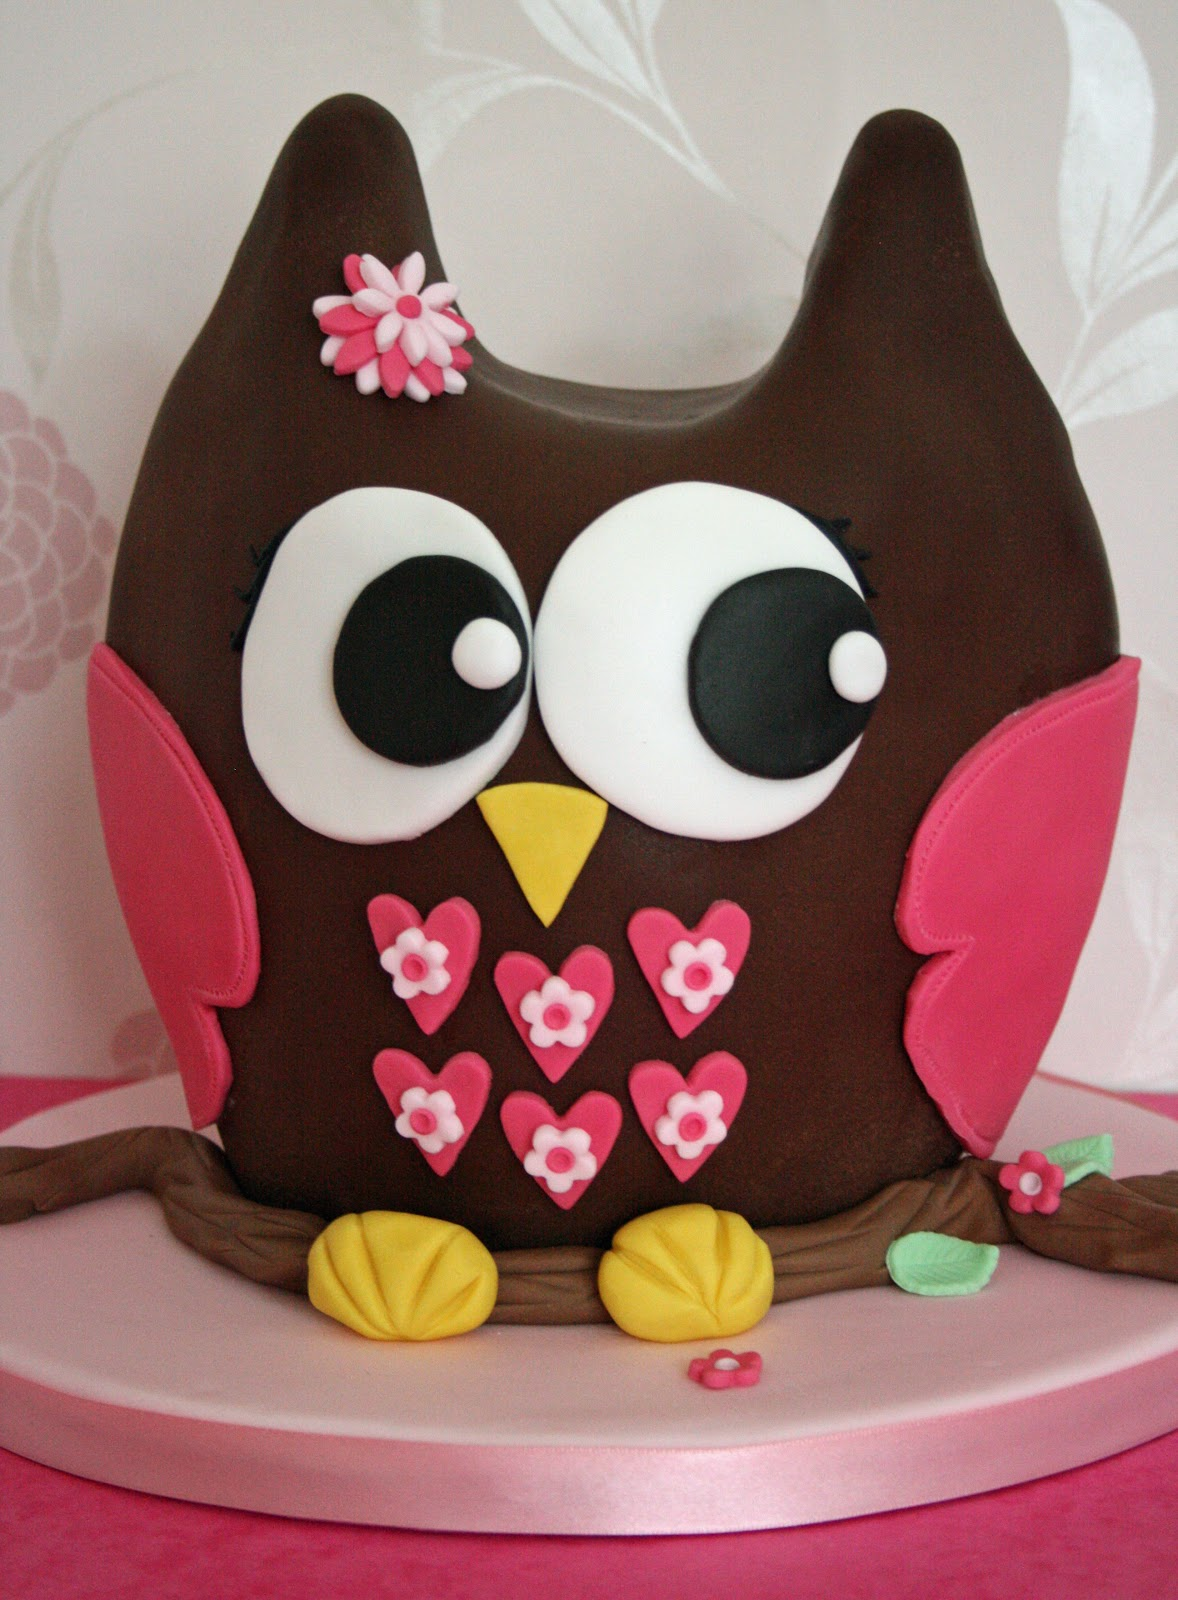 3D Owl Birthday Cakes for Girls